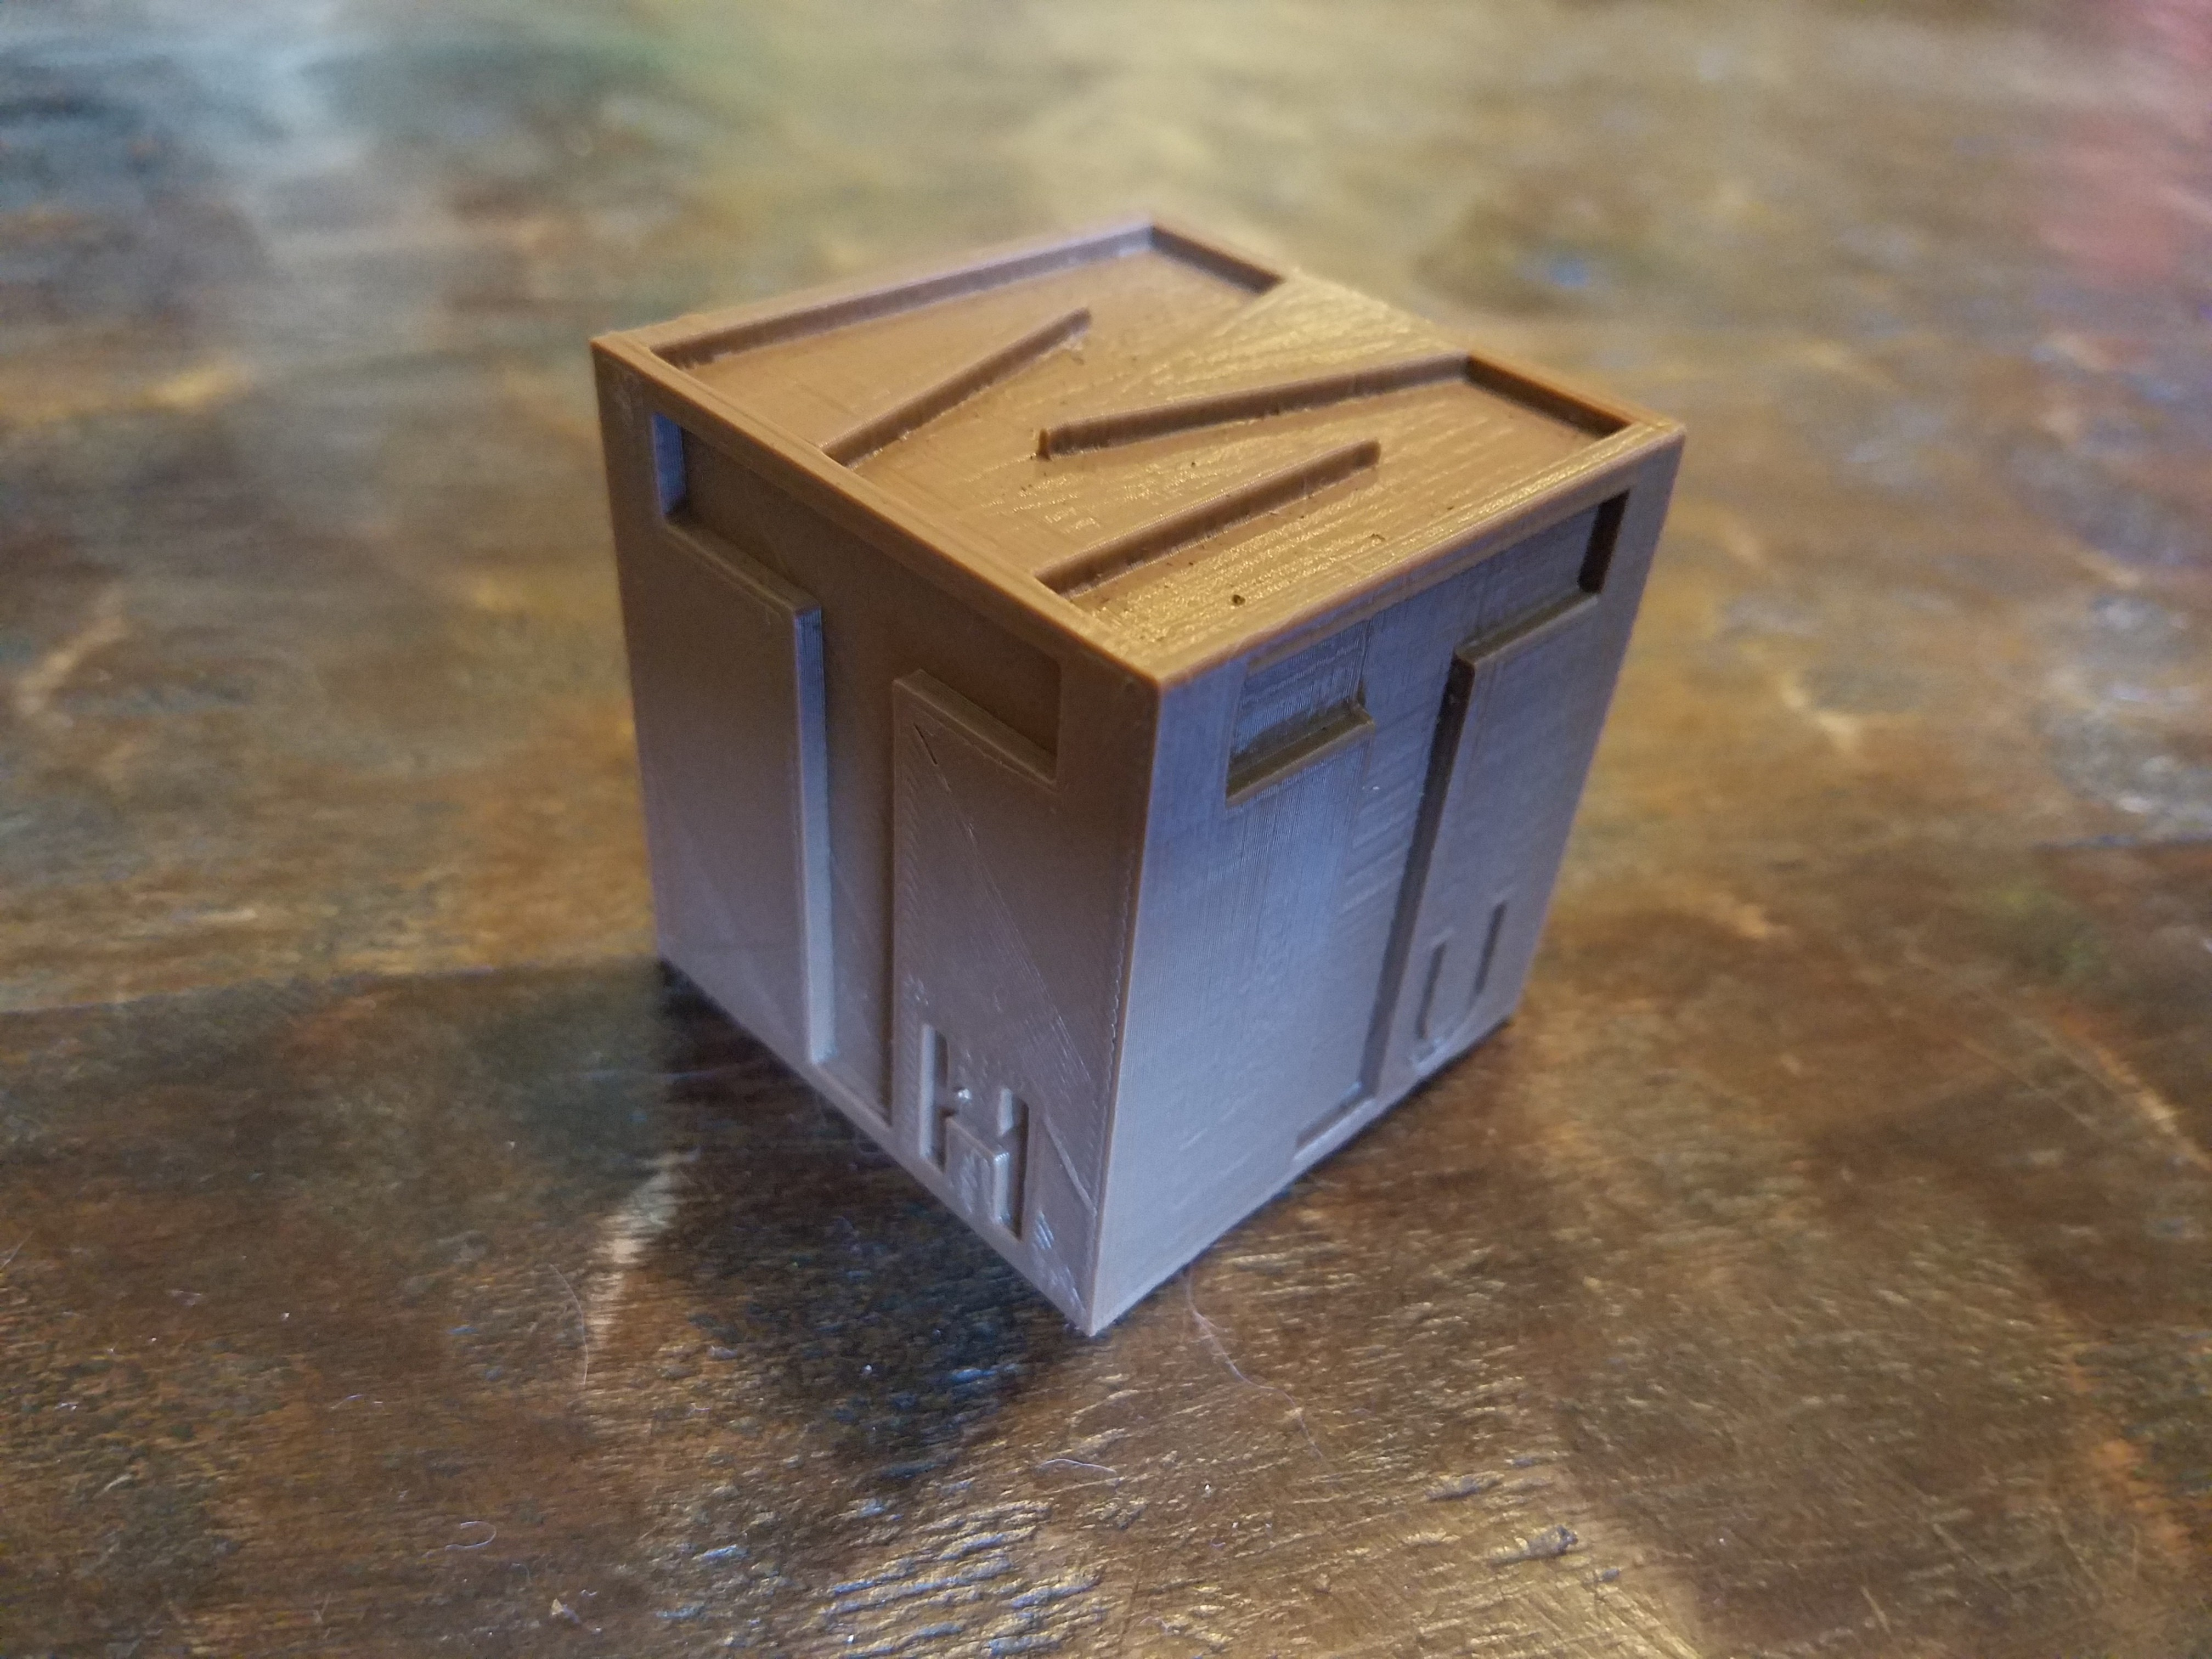 Day Cube.jpg Download free STL file Day Cube • 3D printer model, CWCDesigns